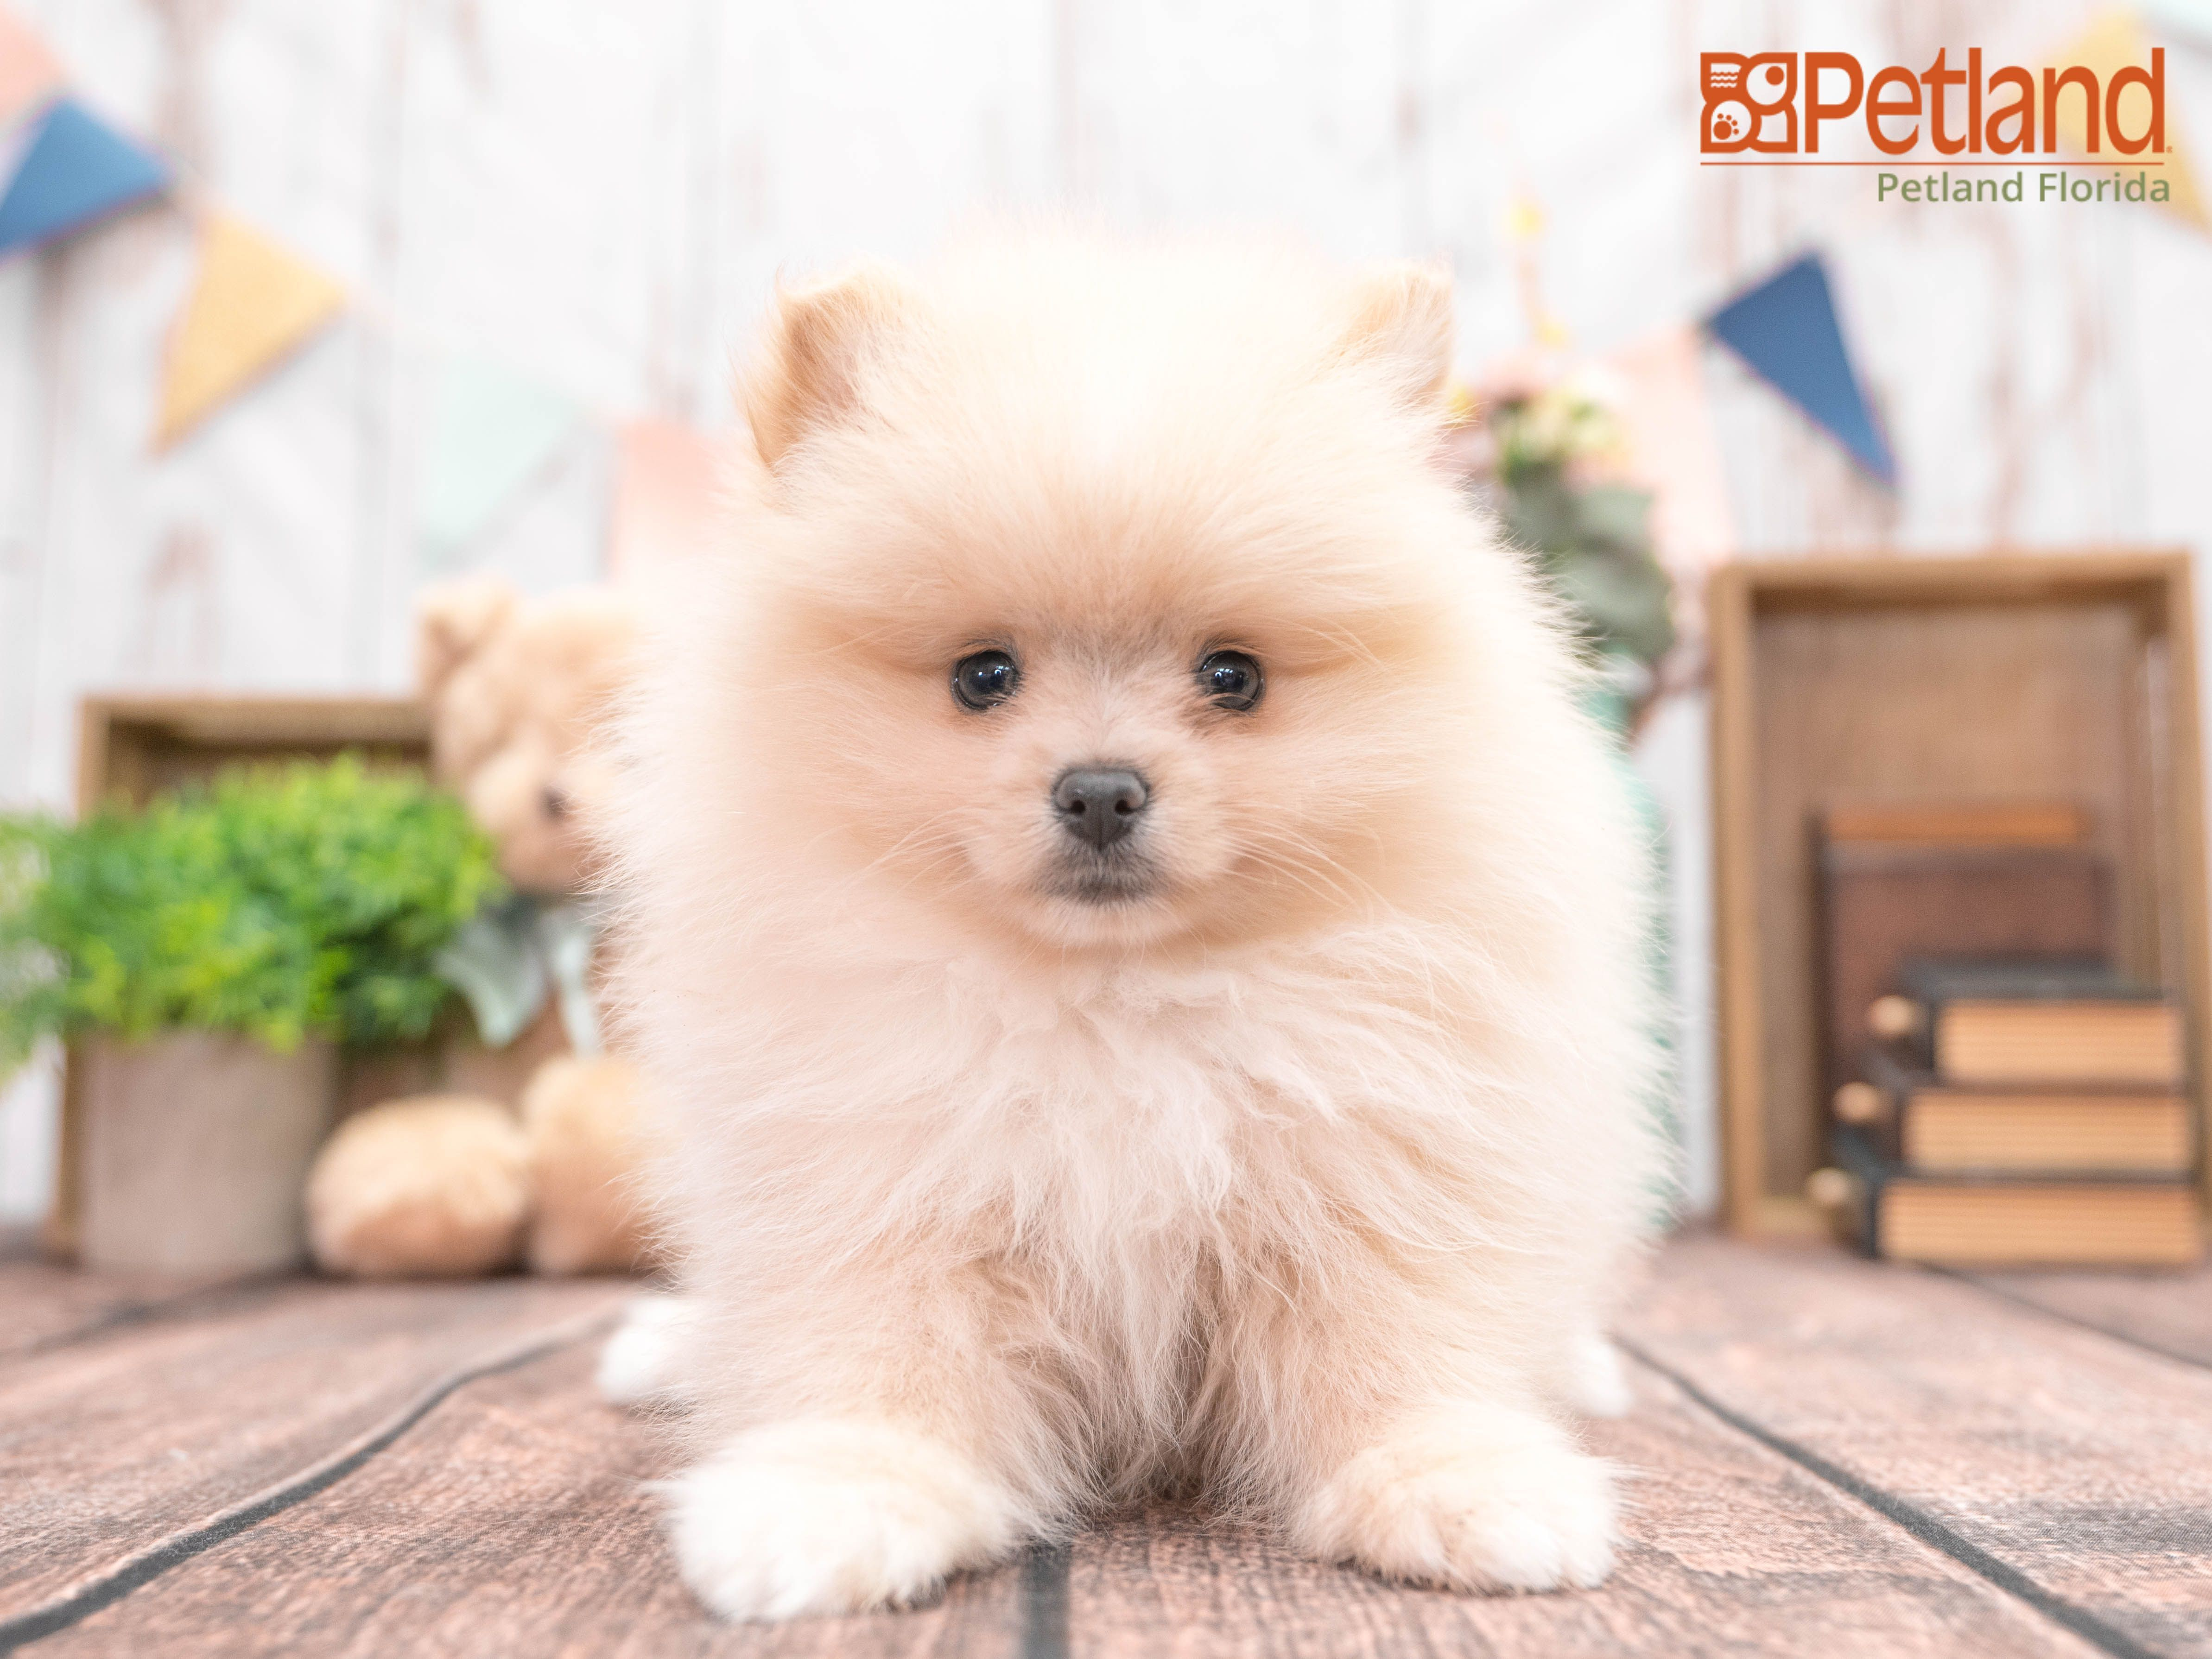 Petland Florida has Pomeranian puppies for sale! Check out